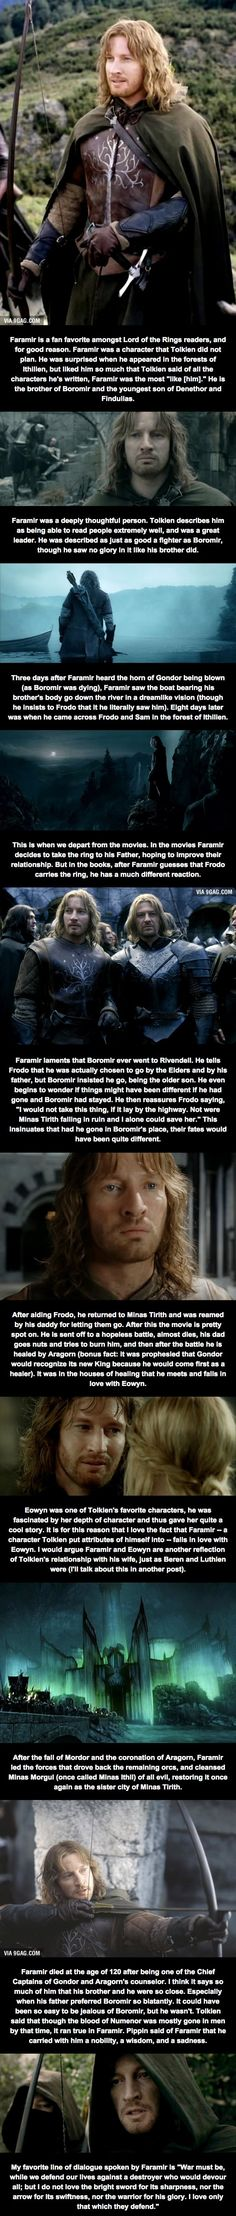 Faramir is awesome and if you don't think so you're wrong